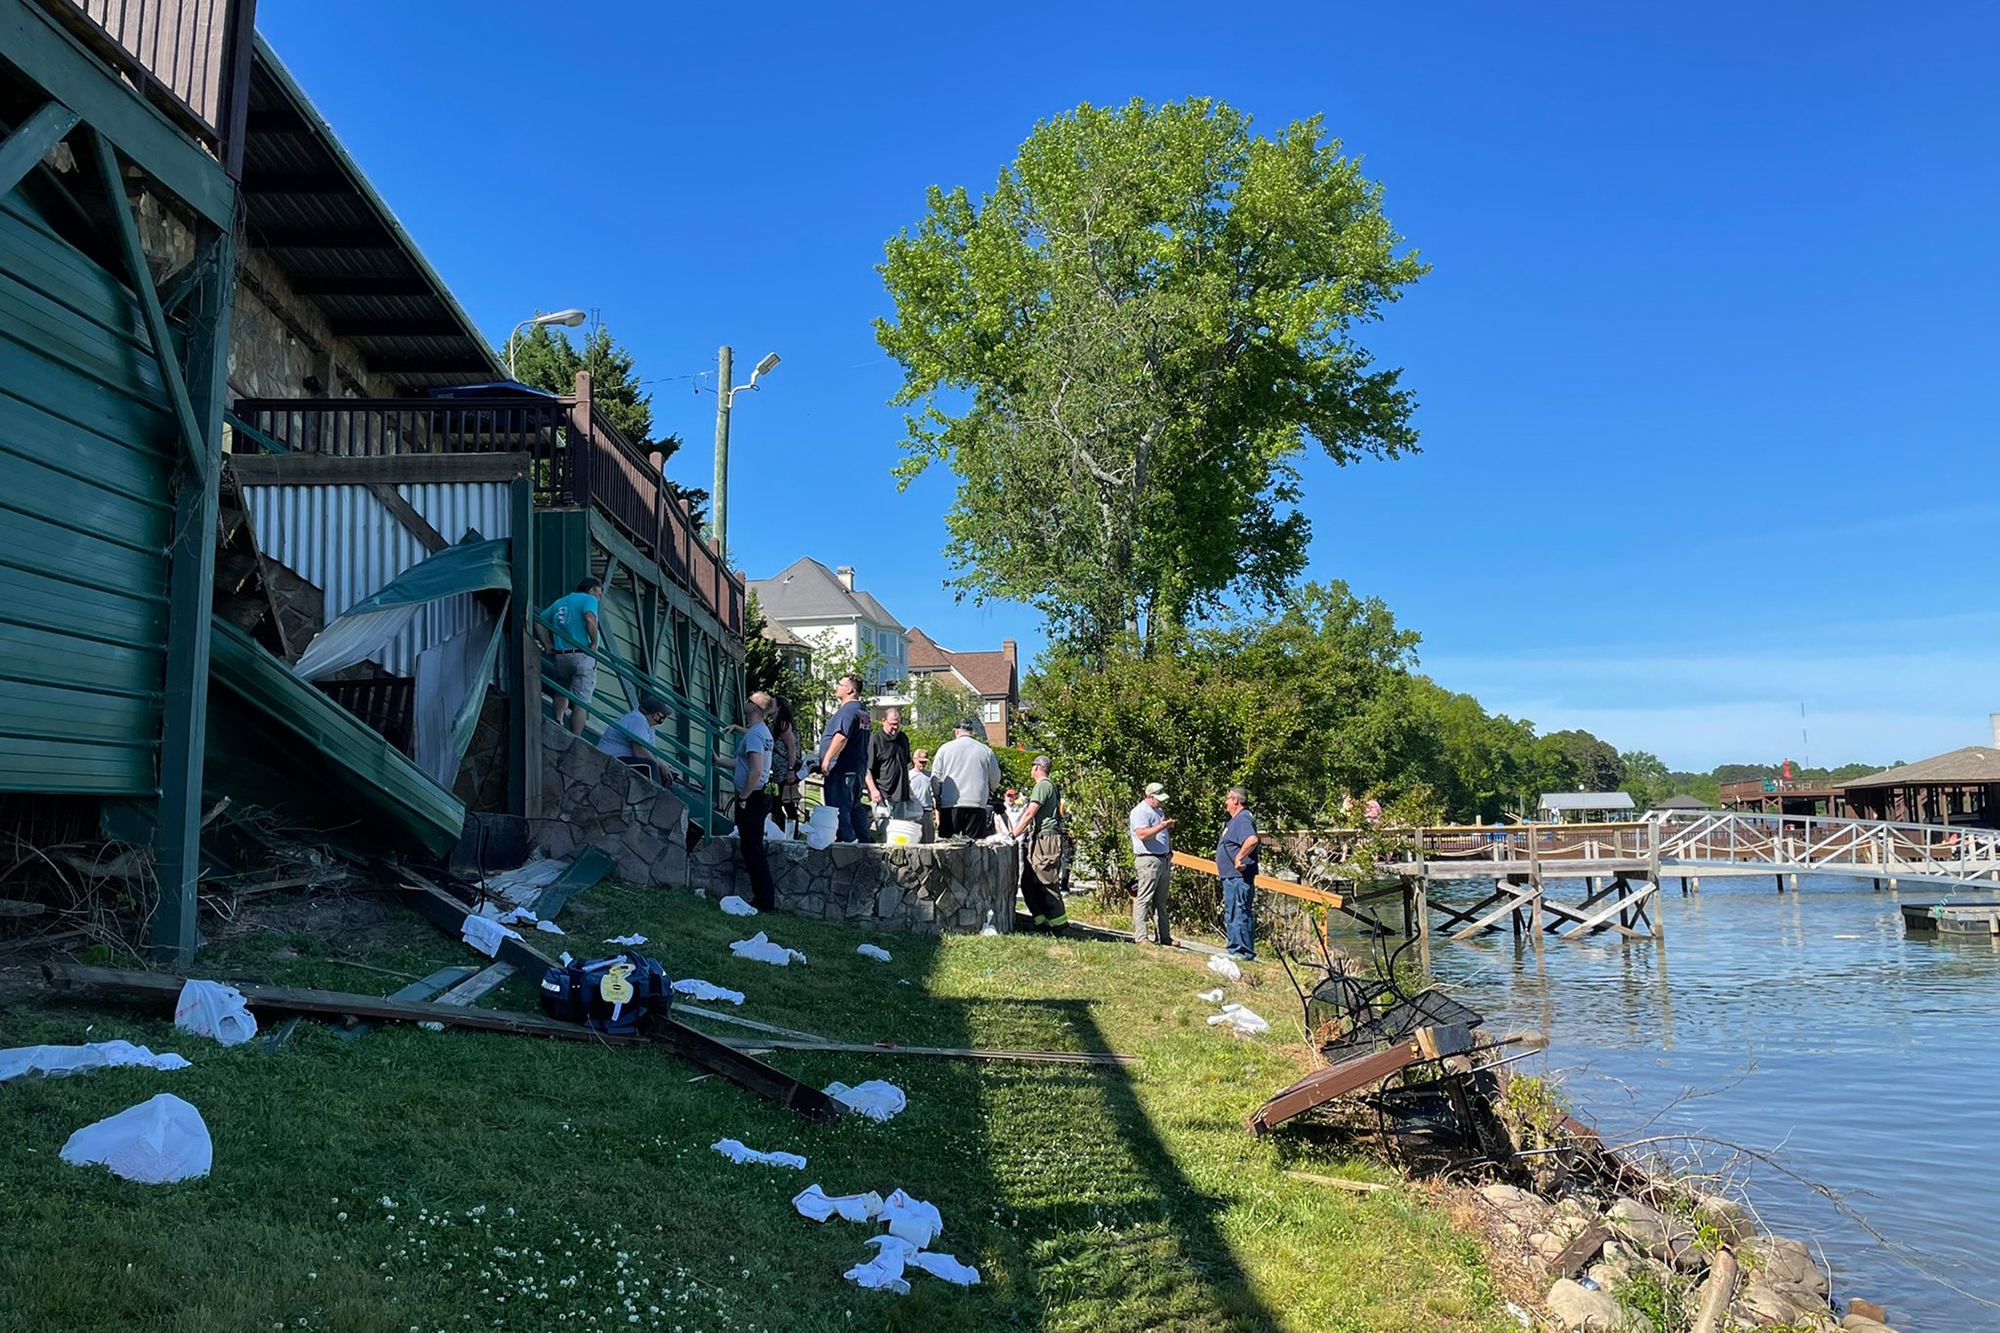 Deck Collapse at Zoi's Restaurant